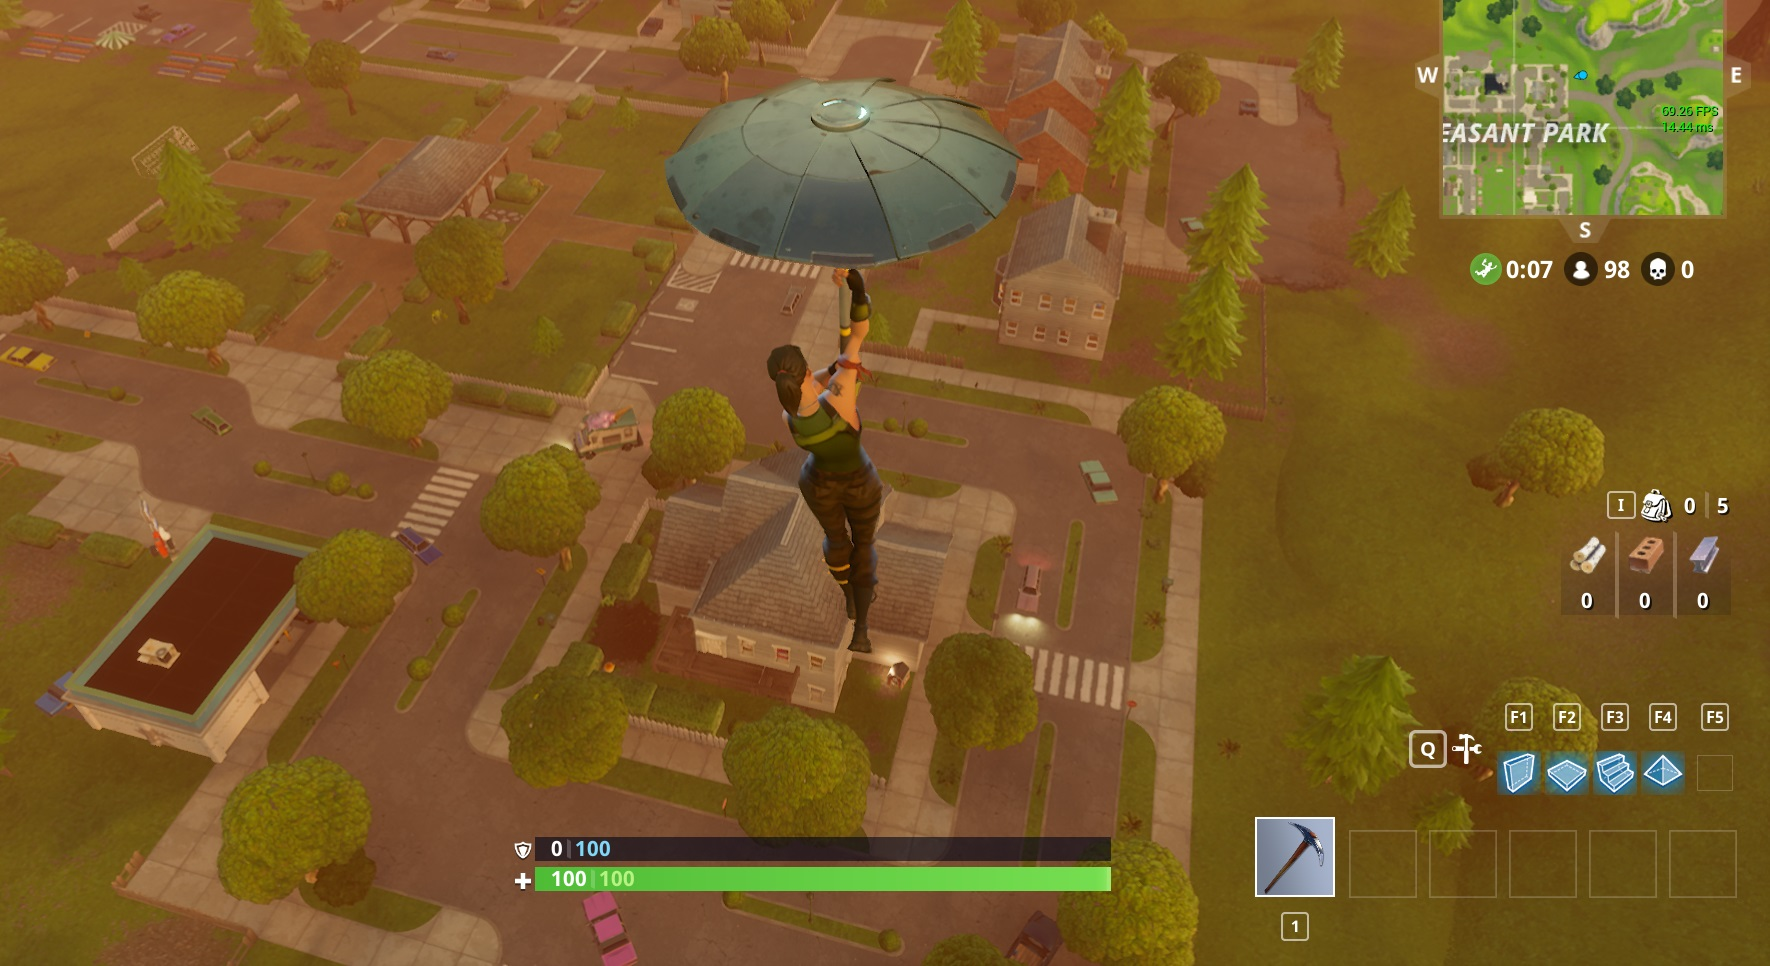 How To Get An Umbrella In Fortnite Battle Royale Allgamers